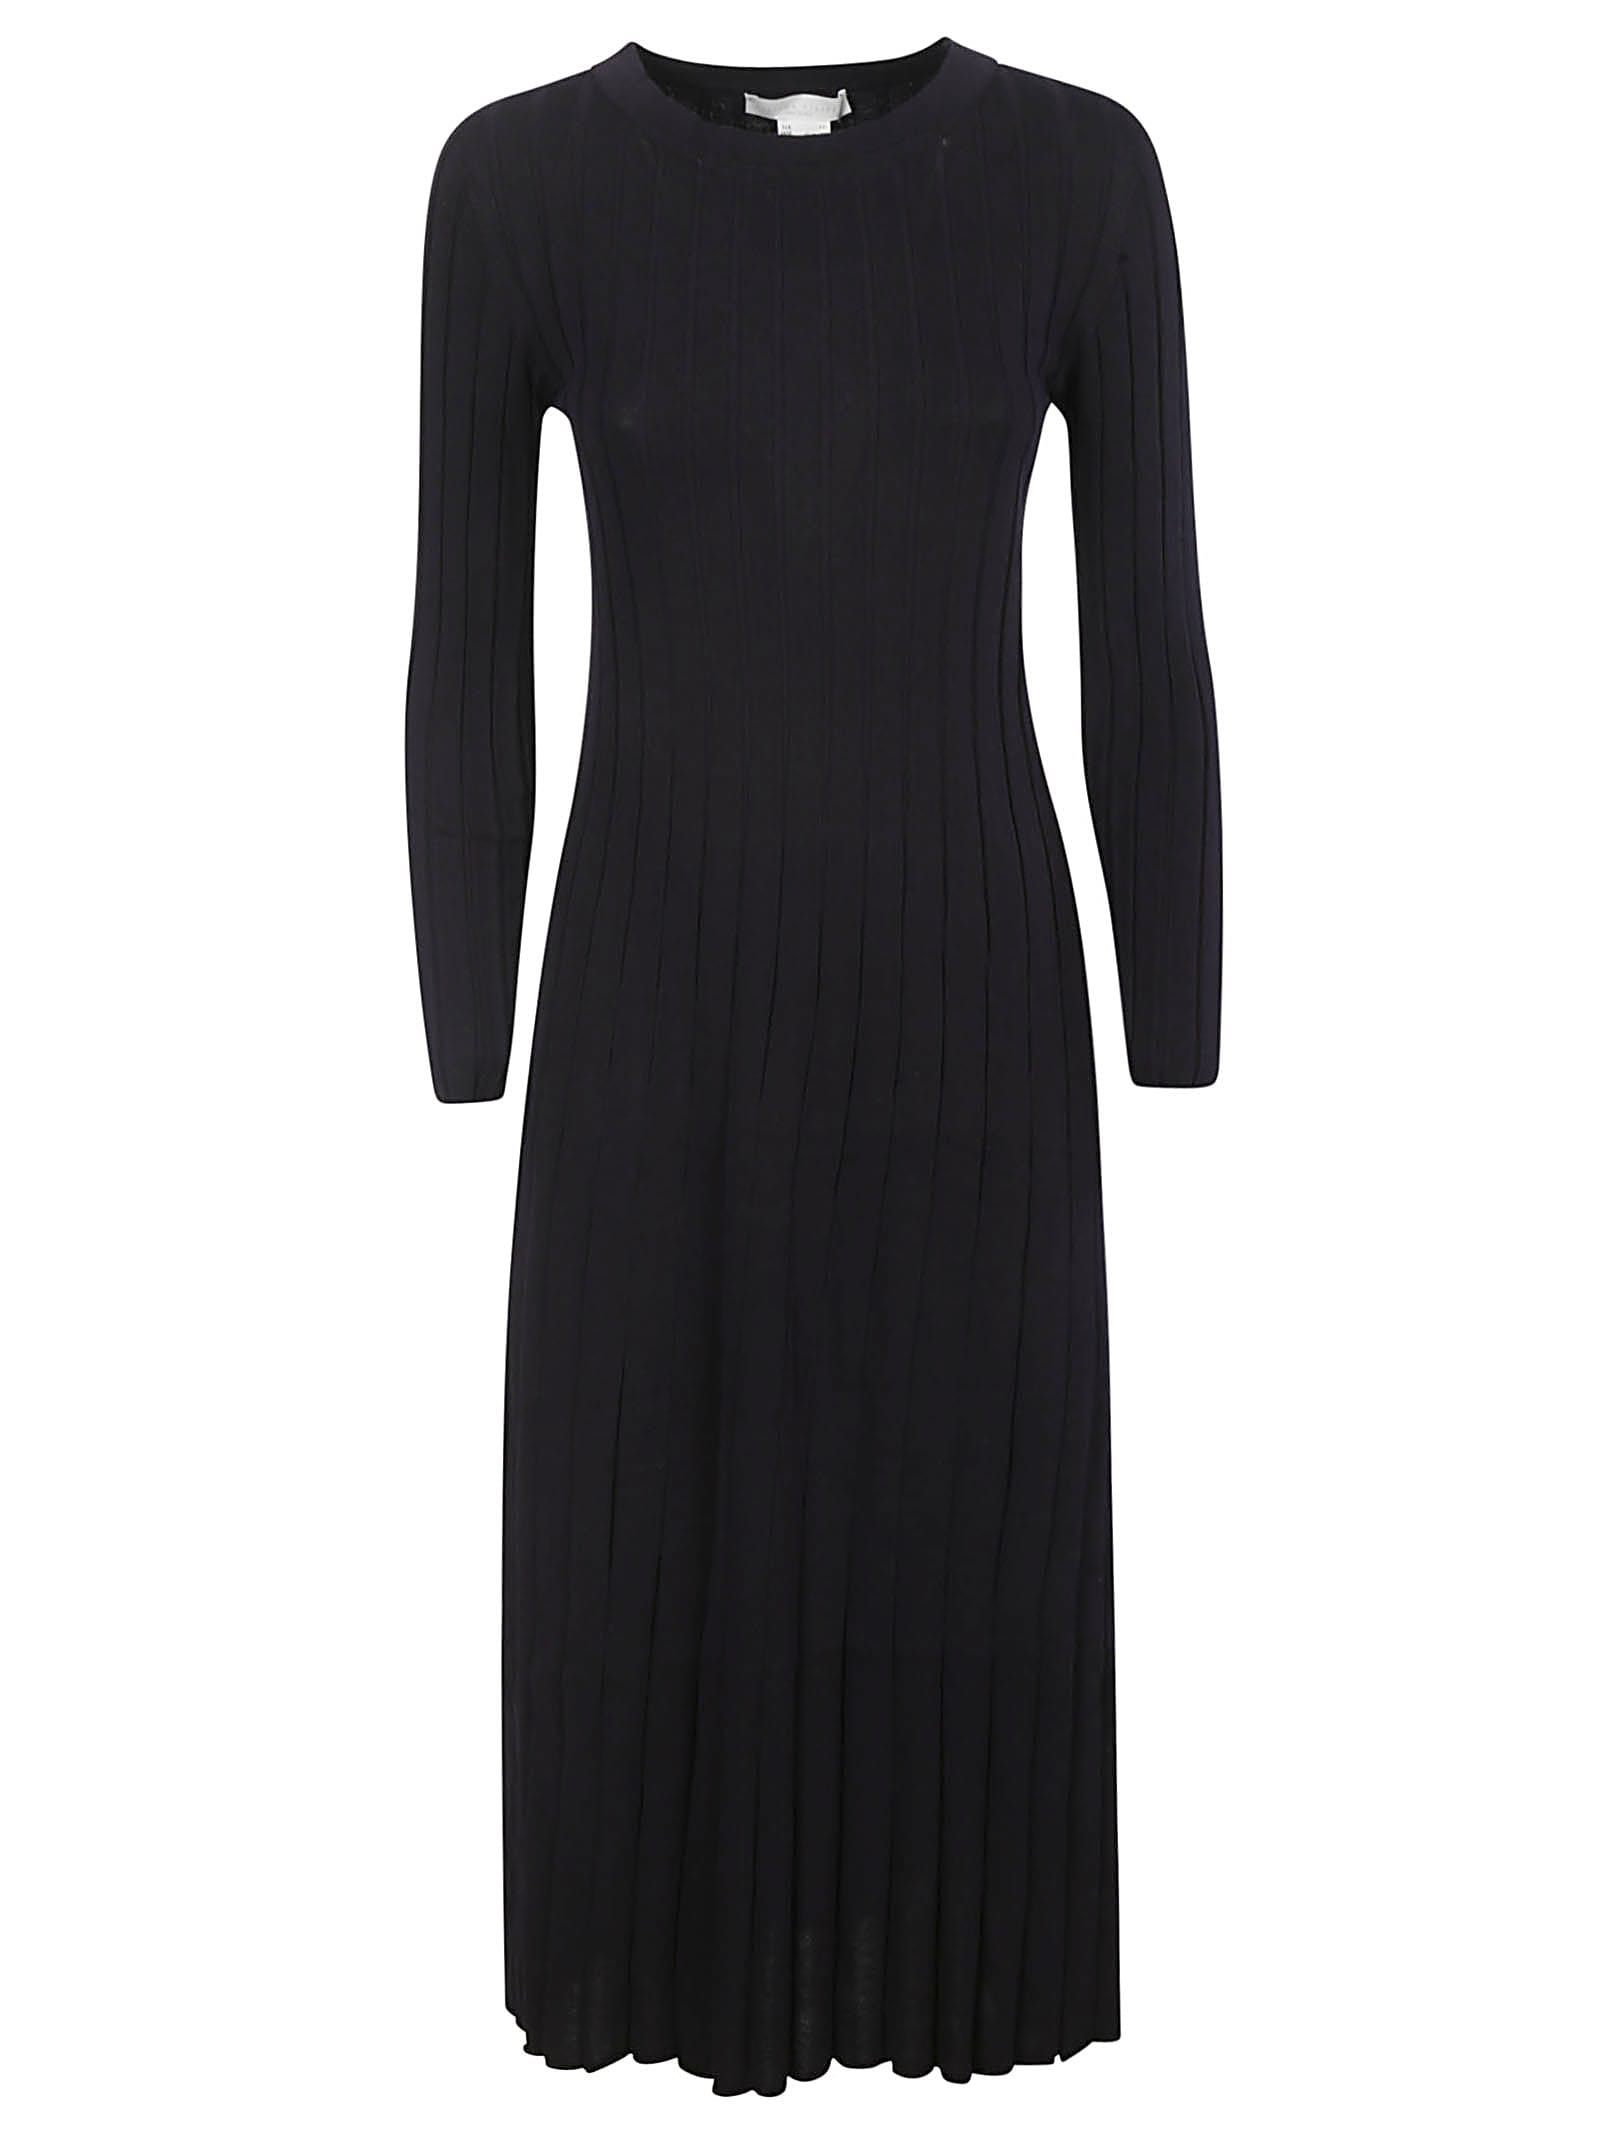 Fabiana Filippi PLEATED SLIM DRESS